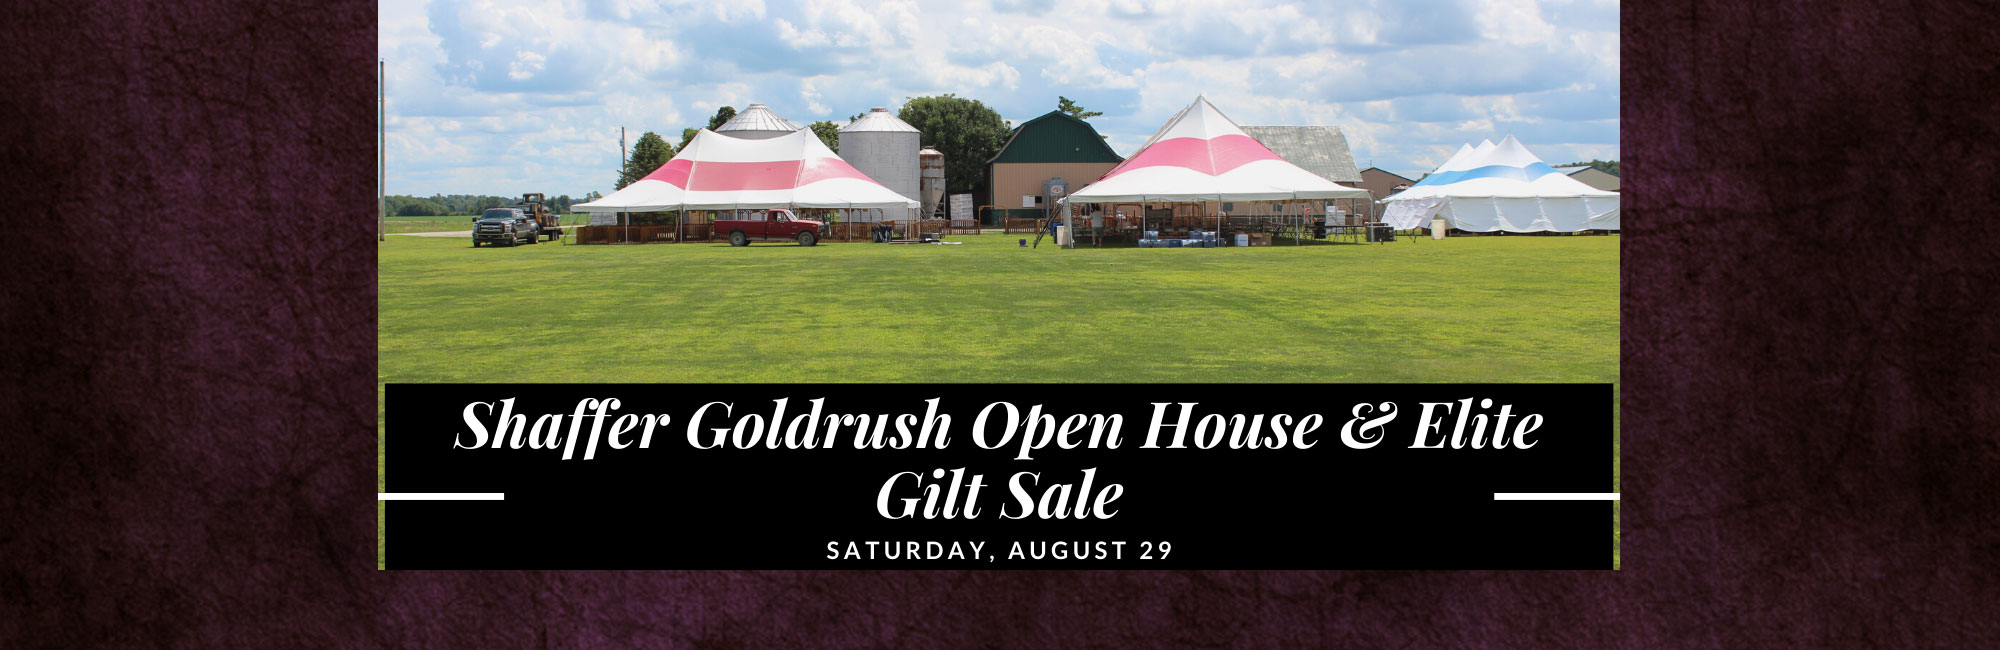 Shaffer Goldrush Open House Elite Gilt Sale